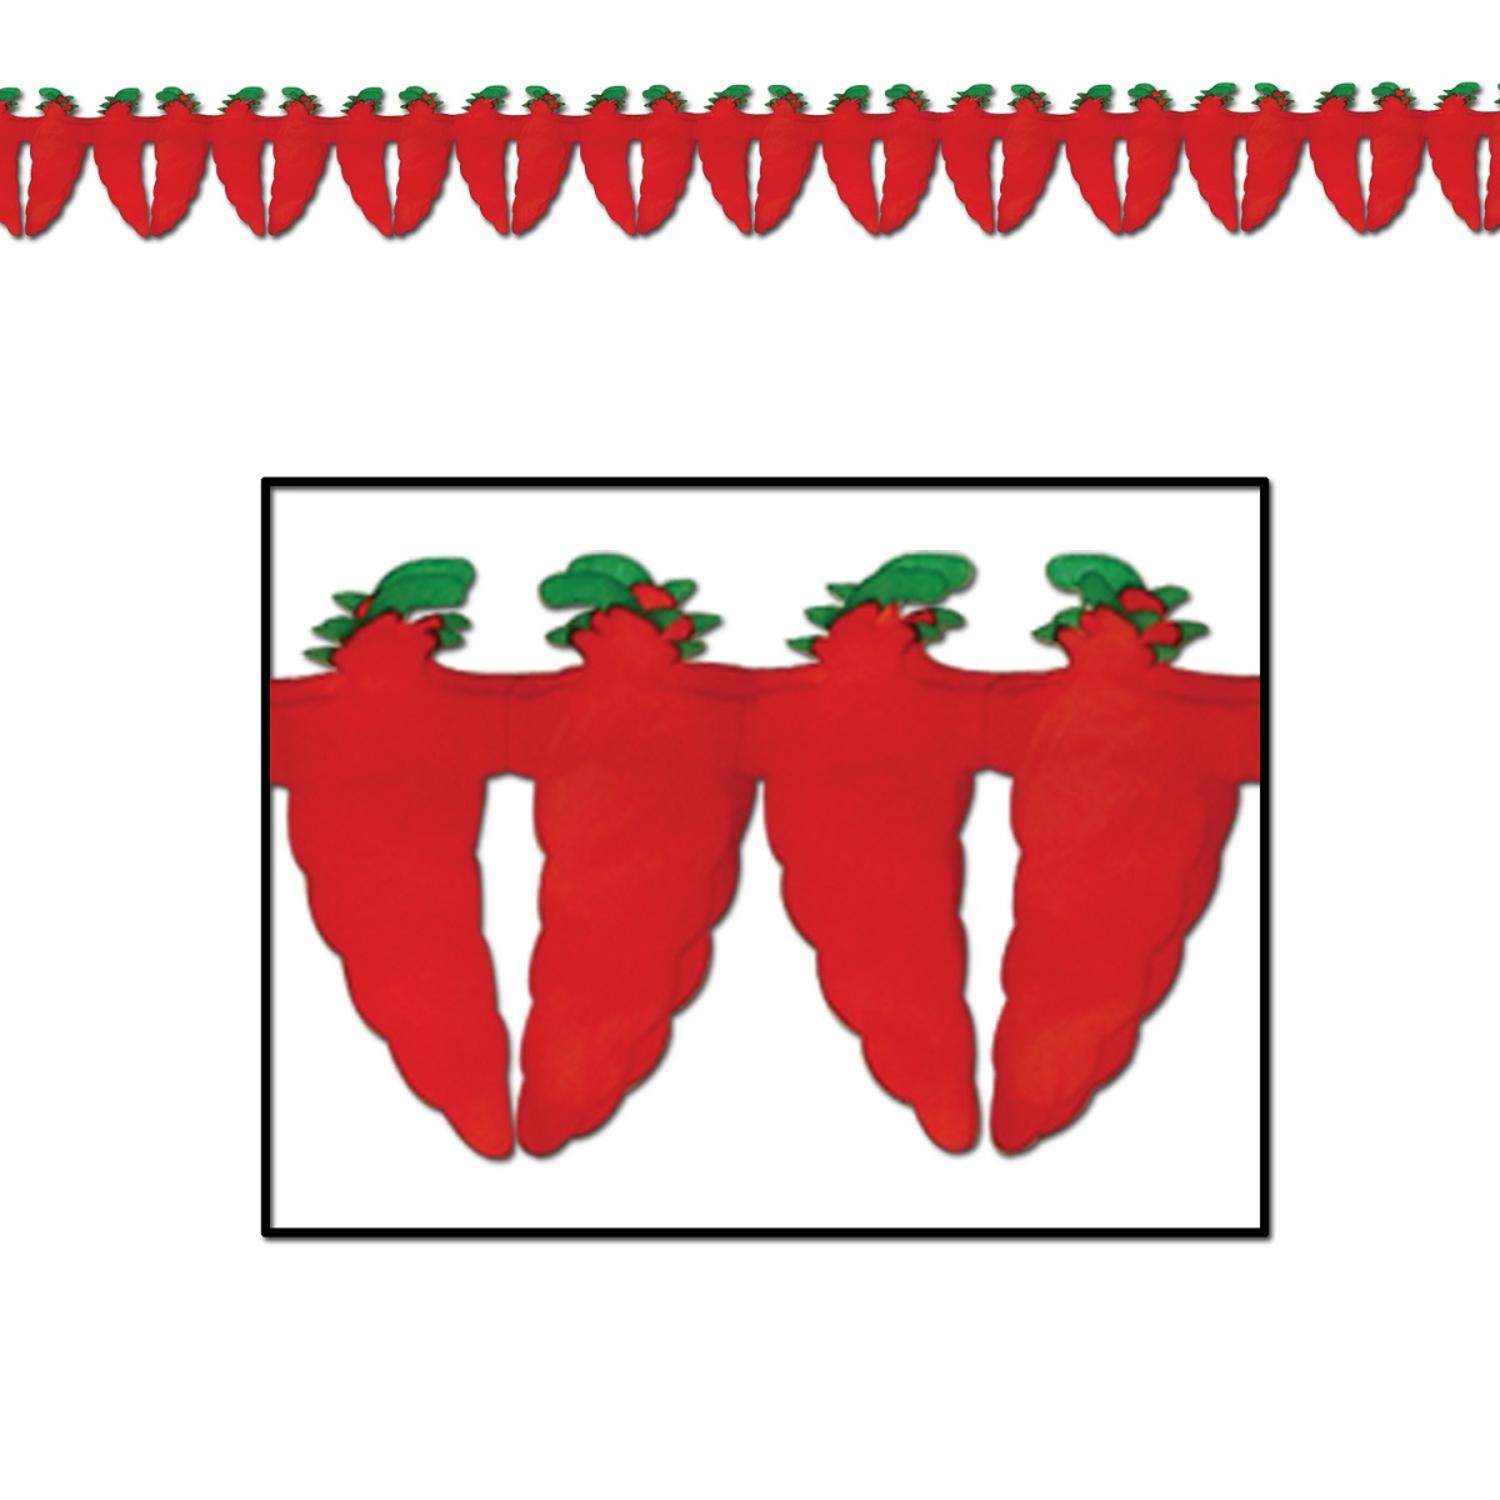 "Pack of 12 Fiery Red Hot Chili Pepper Garland Decorations 5.5"" x 12'"